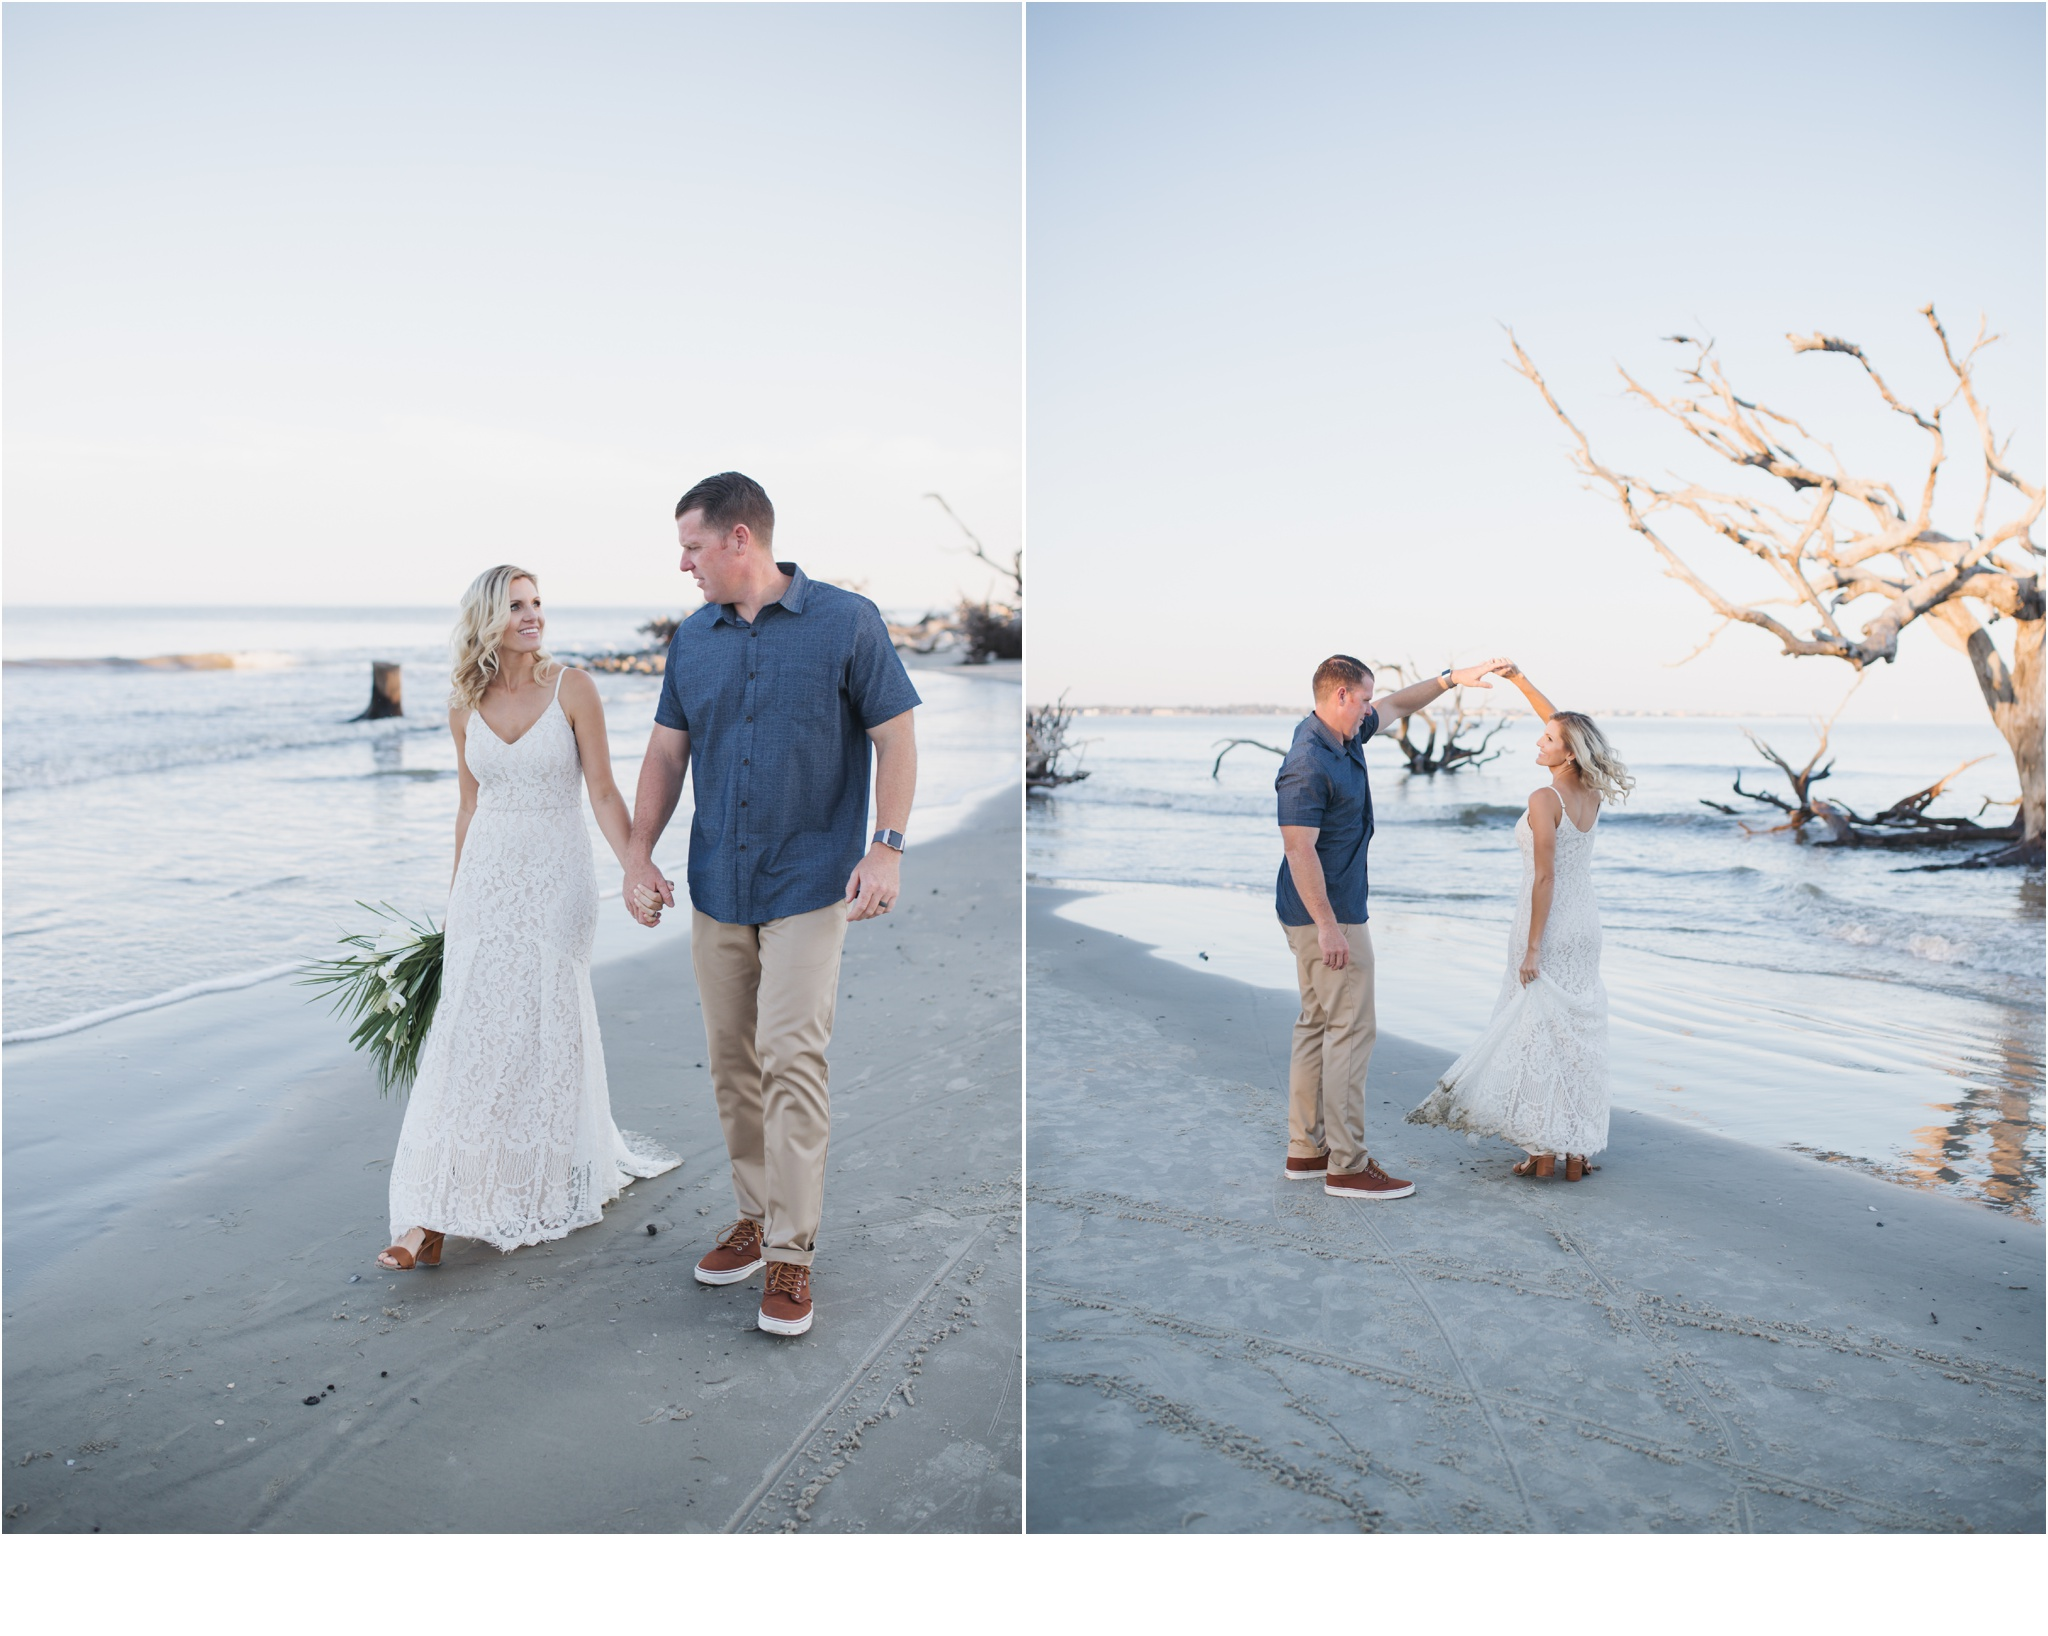 Rainey_Gregg_Photography_St._Simons_Island_Georgia_California_Wedding_Portrait_Photography_1592.jpg